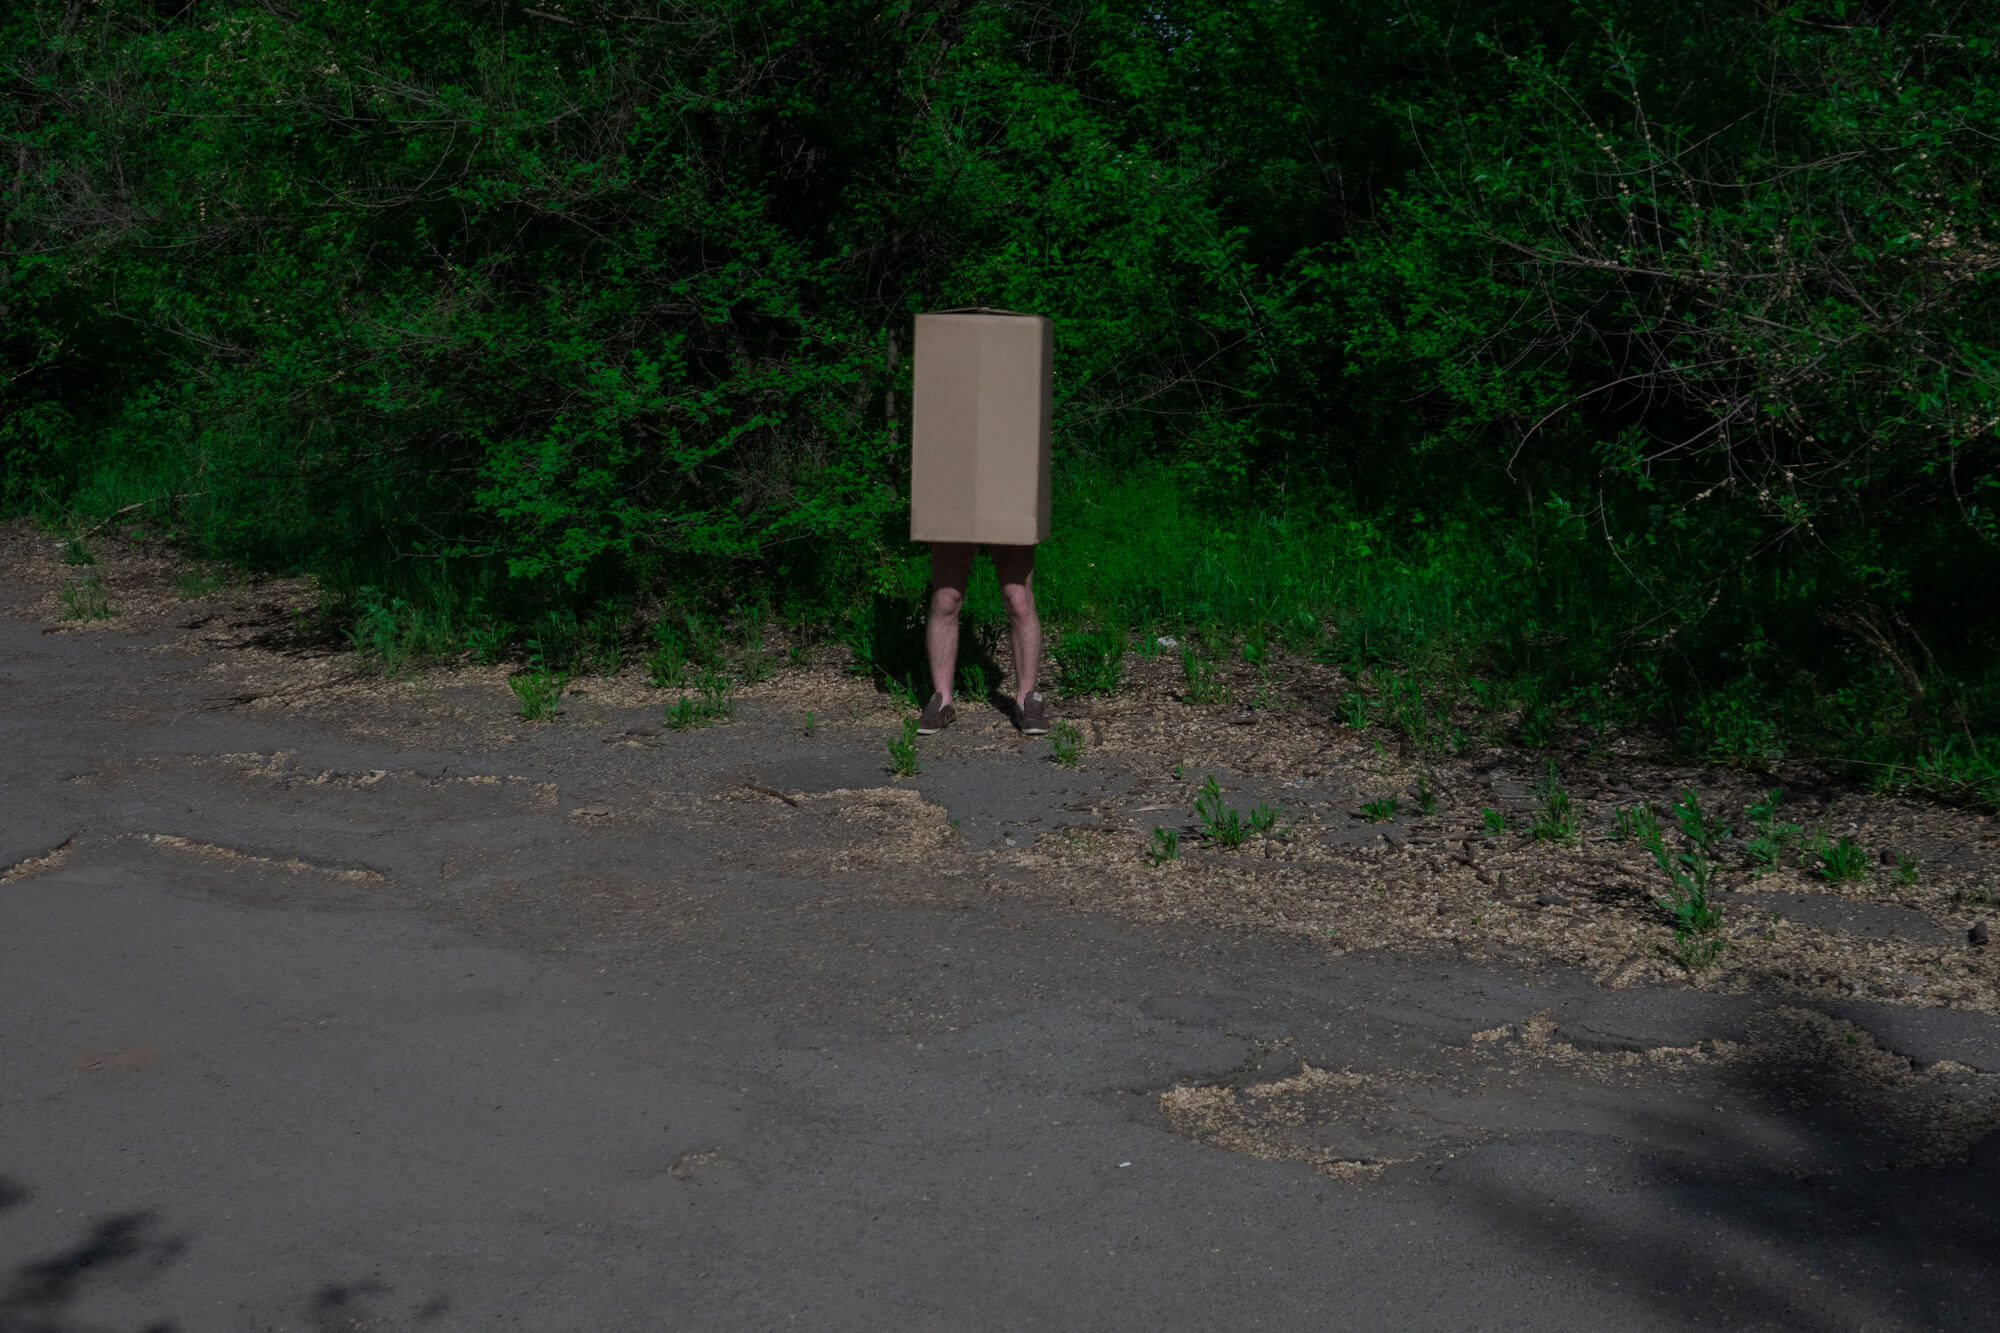 Thor Dudnk the box man man wearing box in the street on the south west collective of photography